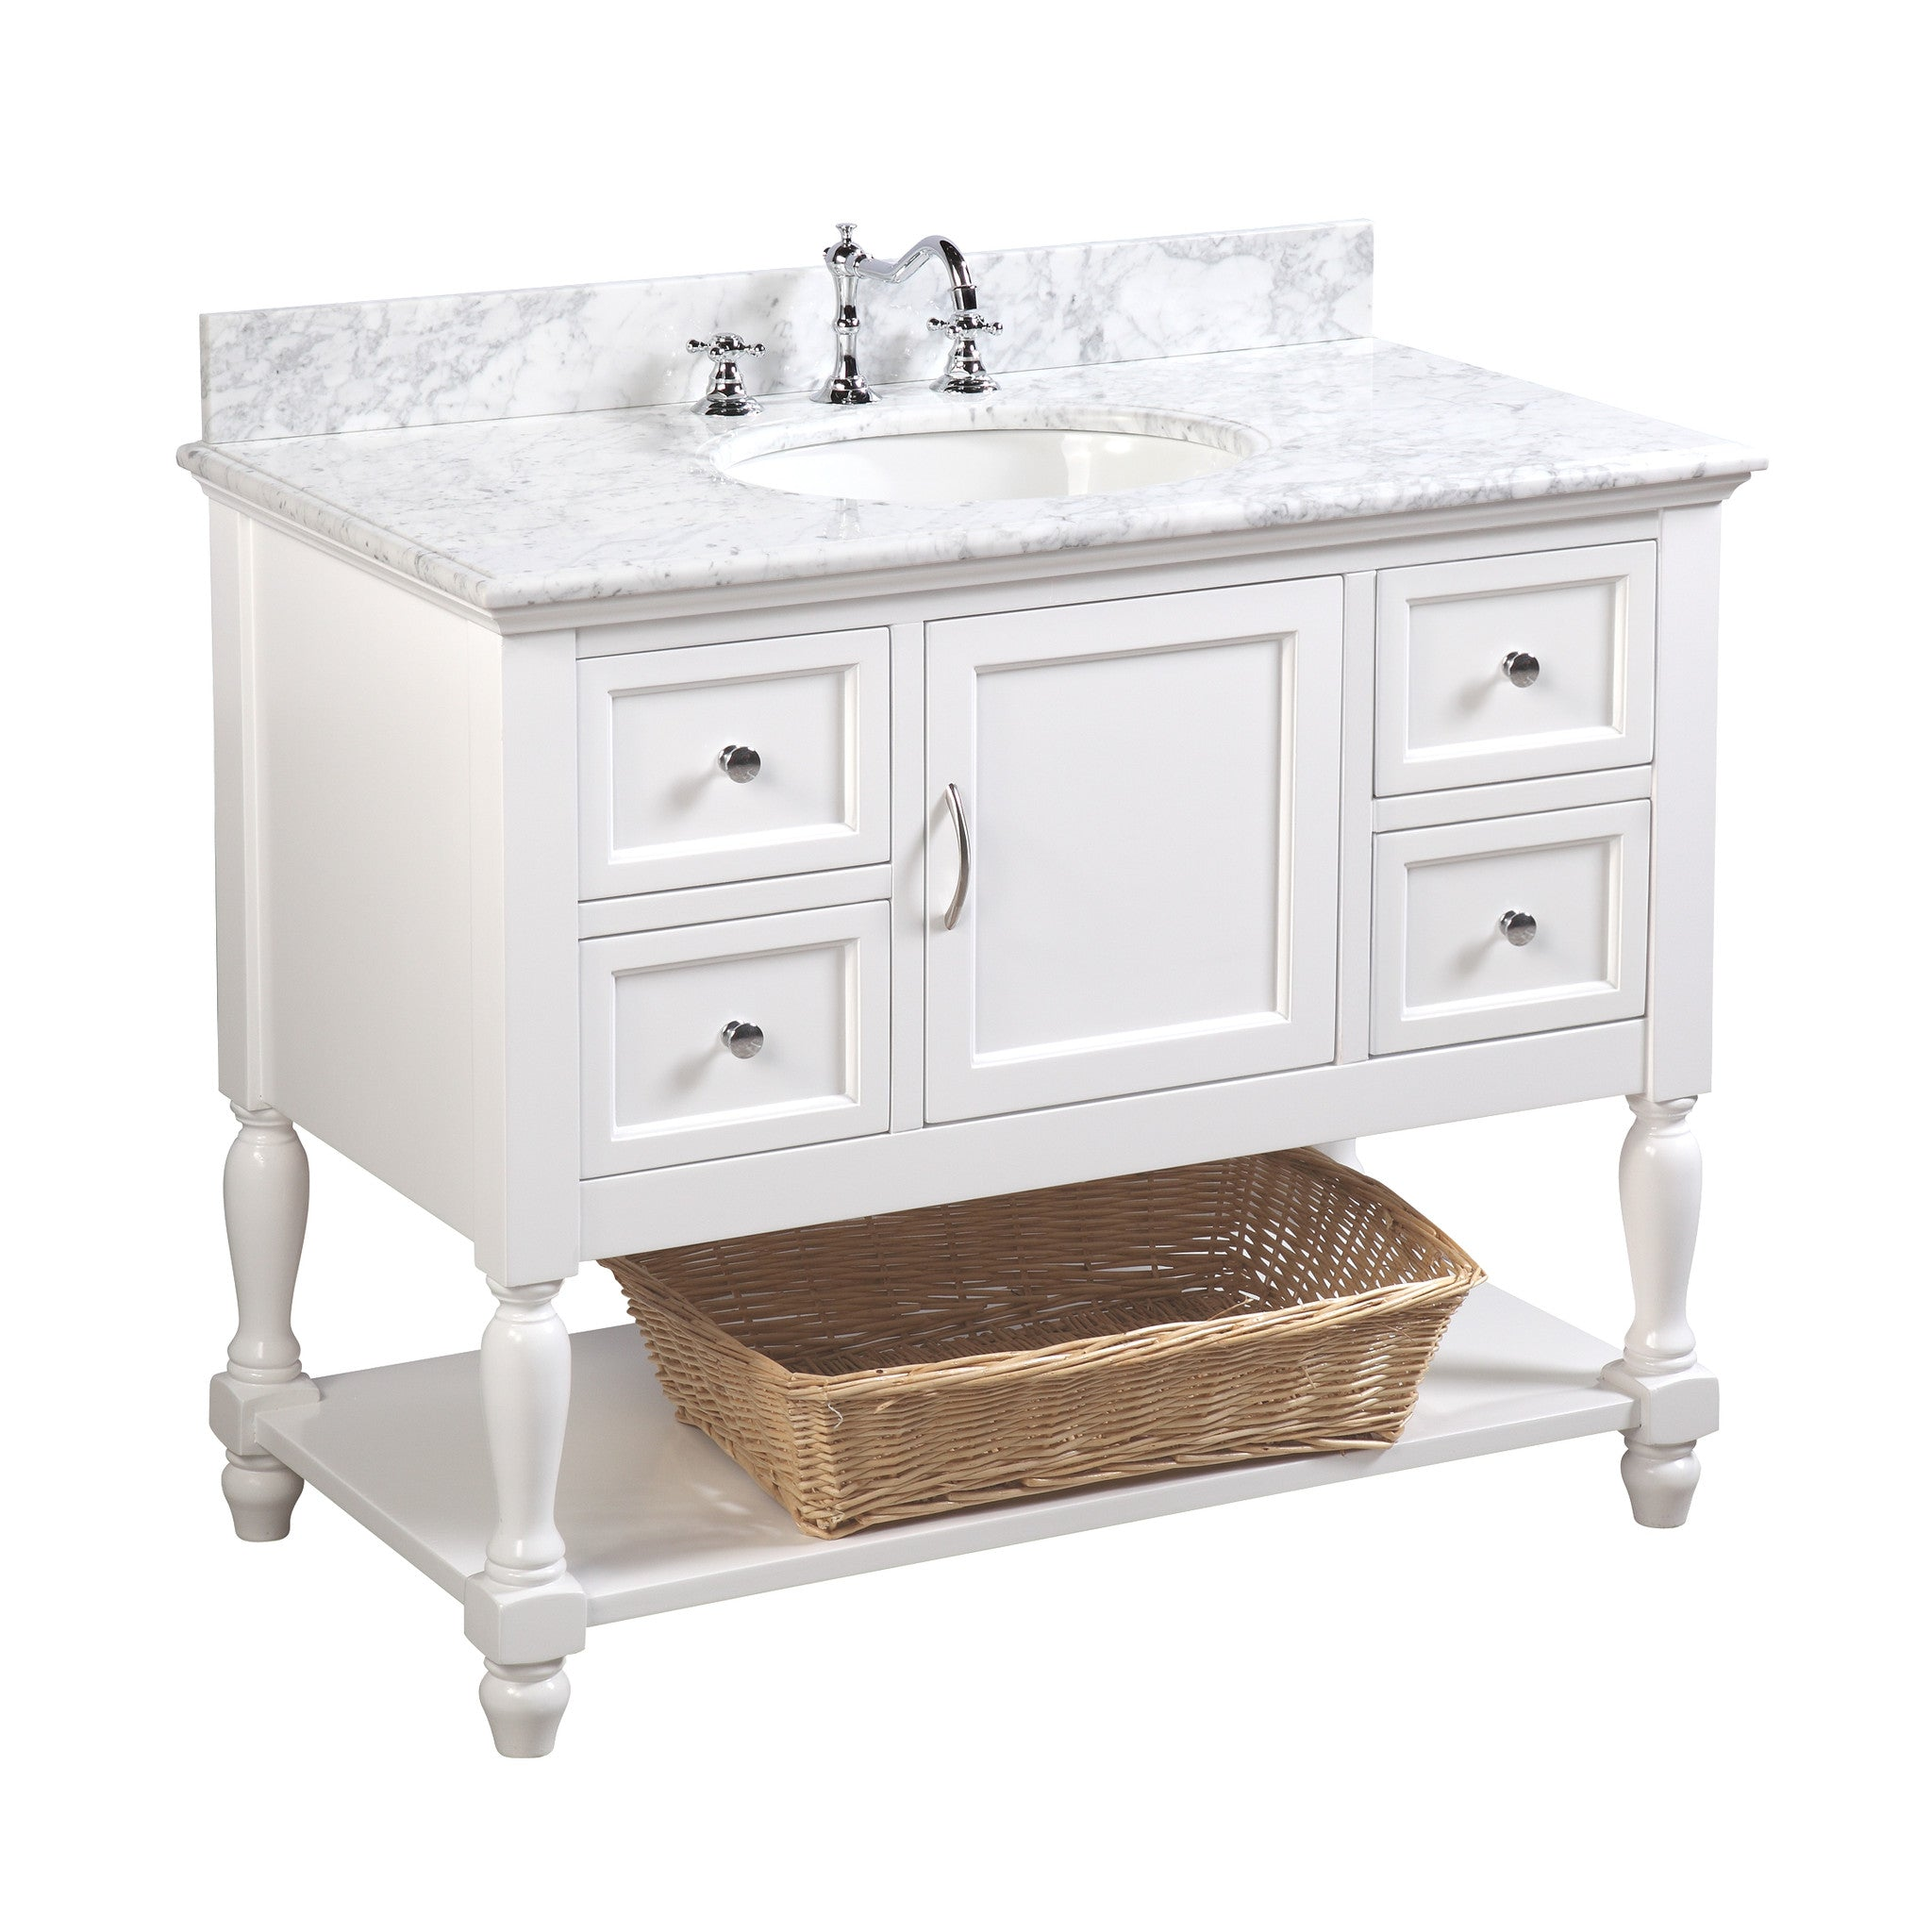 fresh of most hole images vanity sink bang bathroom cabinet tuximus single up top inch unique lovely console